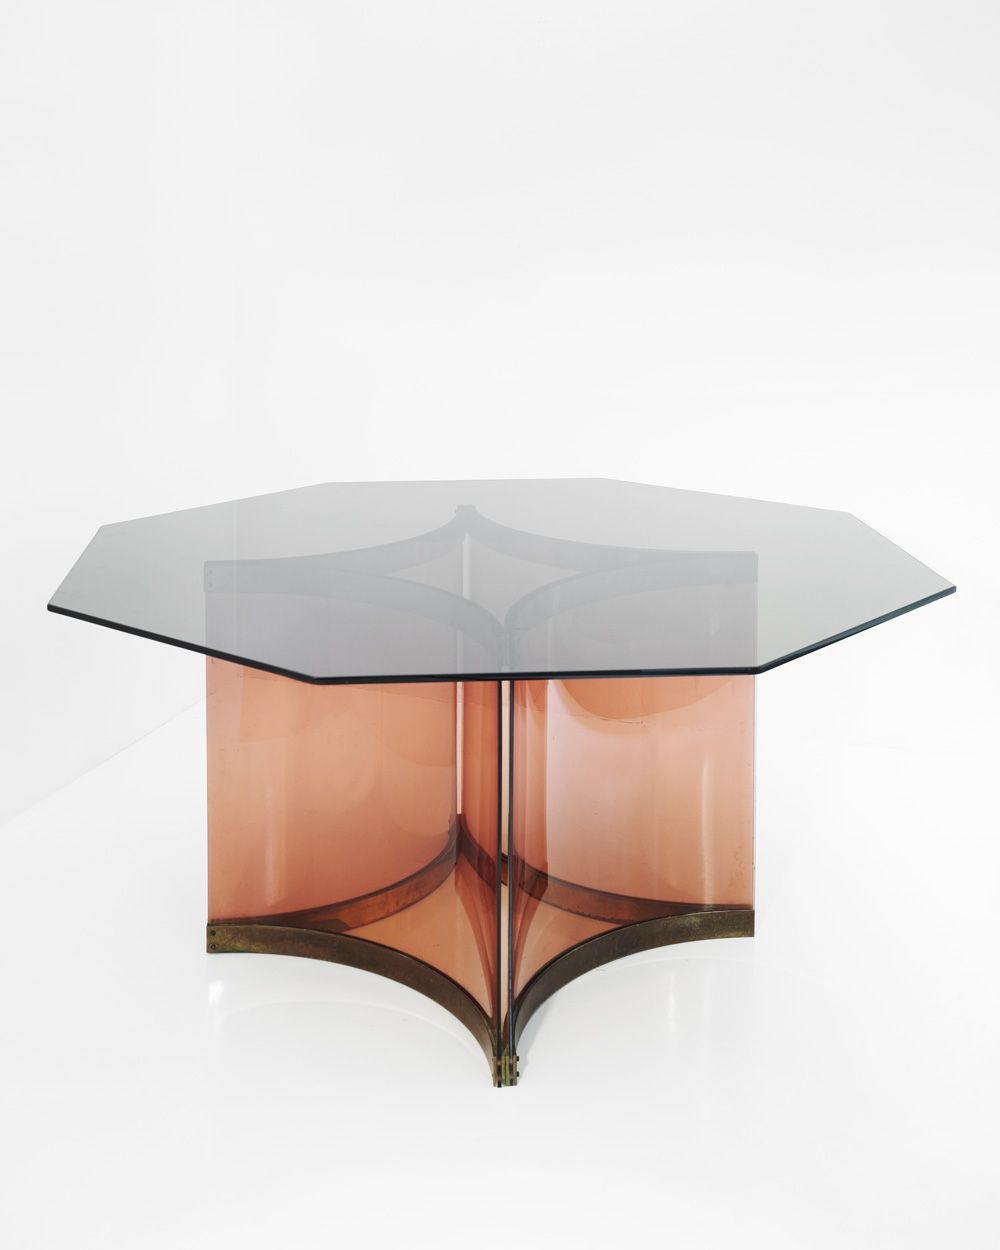 Alessandro Albrizzi Smoked Glass Top Octagonal Dining Table With Perspex Base In Smoked Rose And Brass